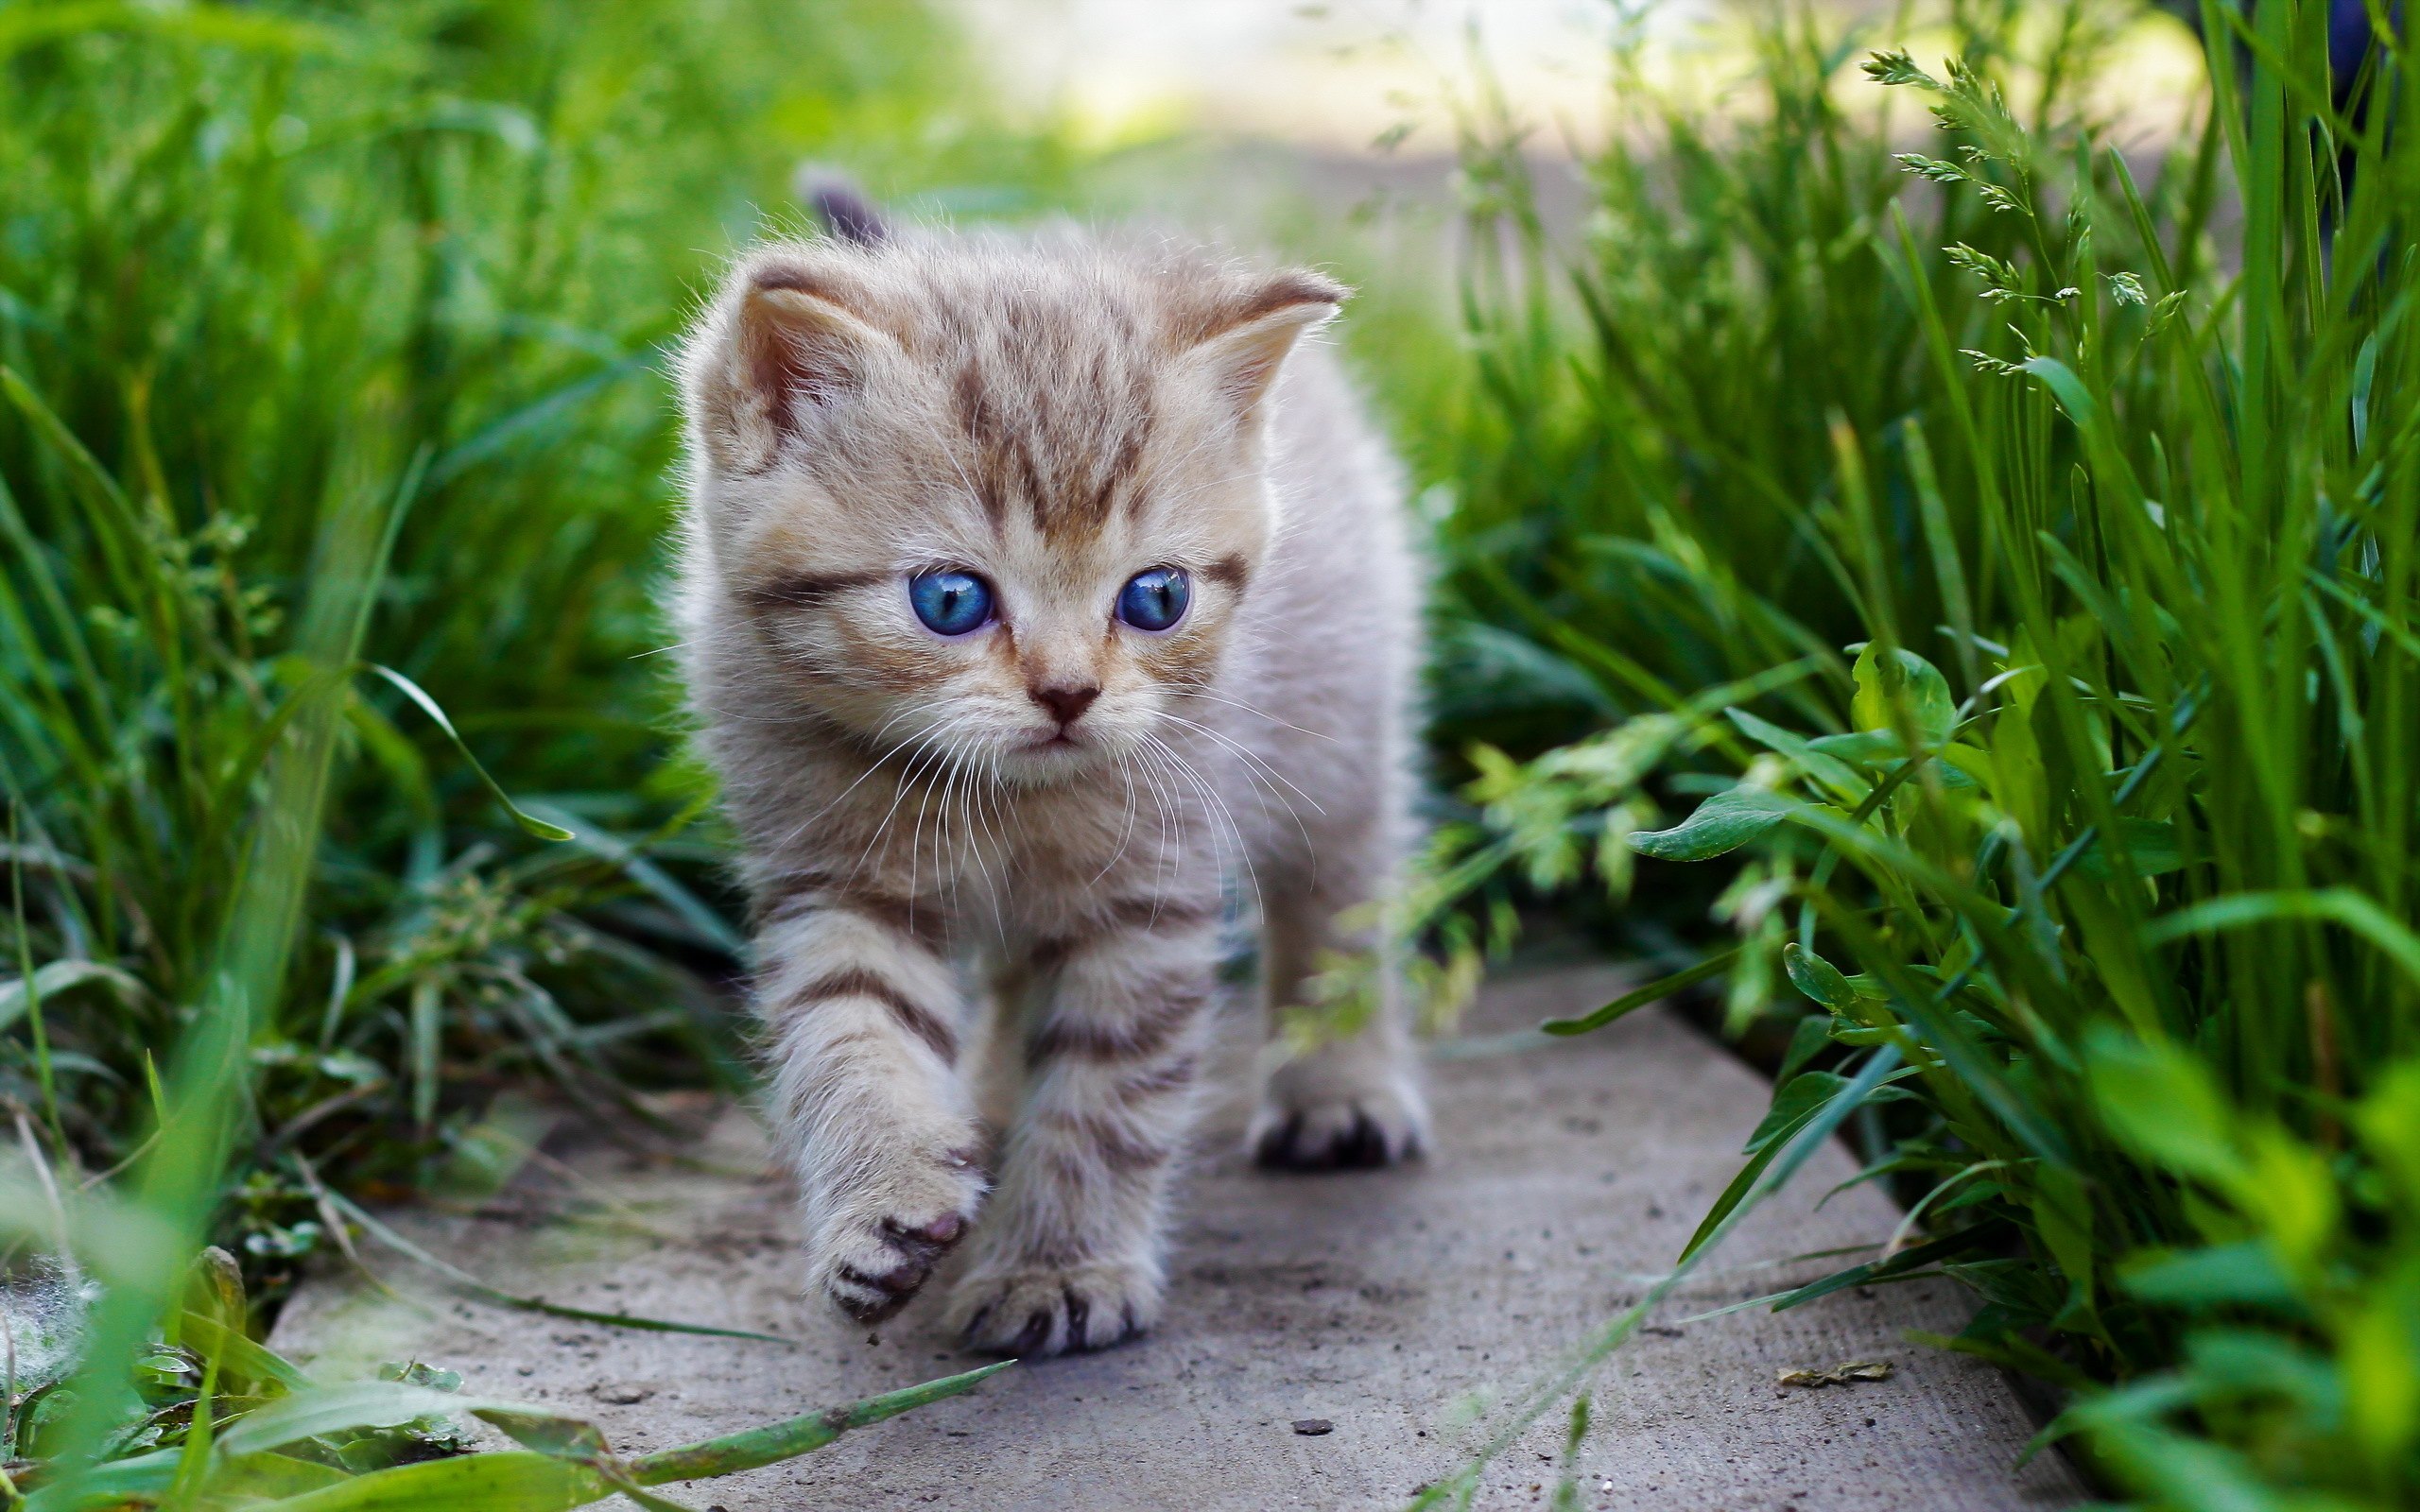 Adorable Baby Cat Wallpaper